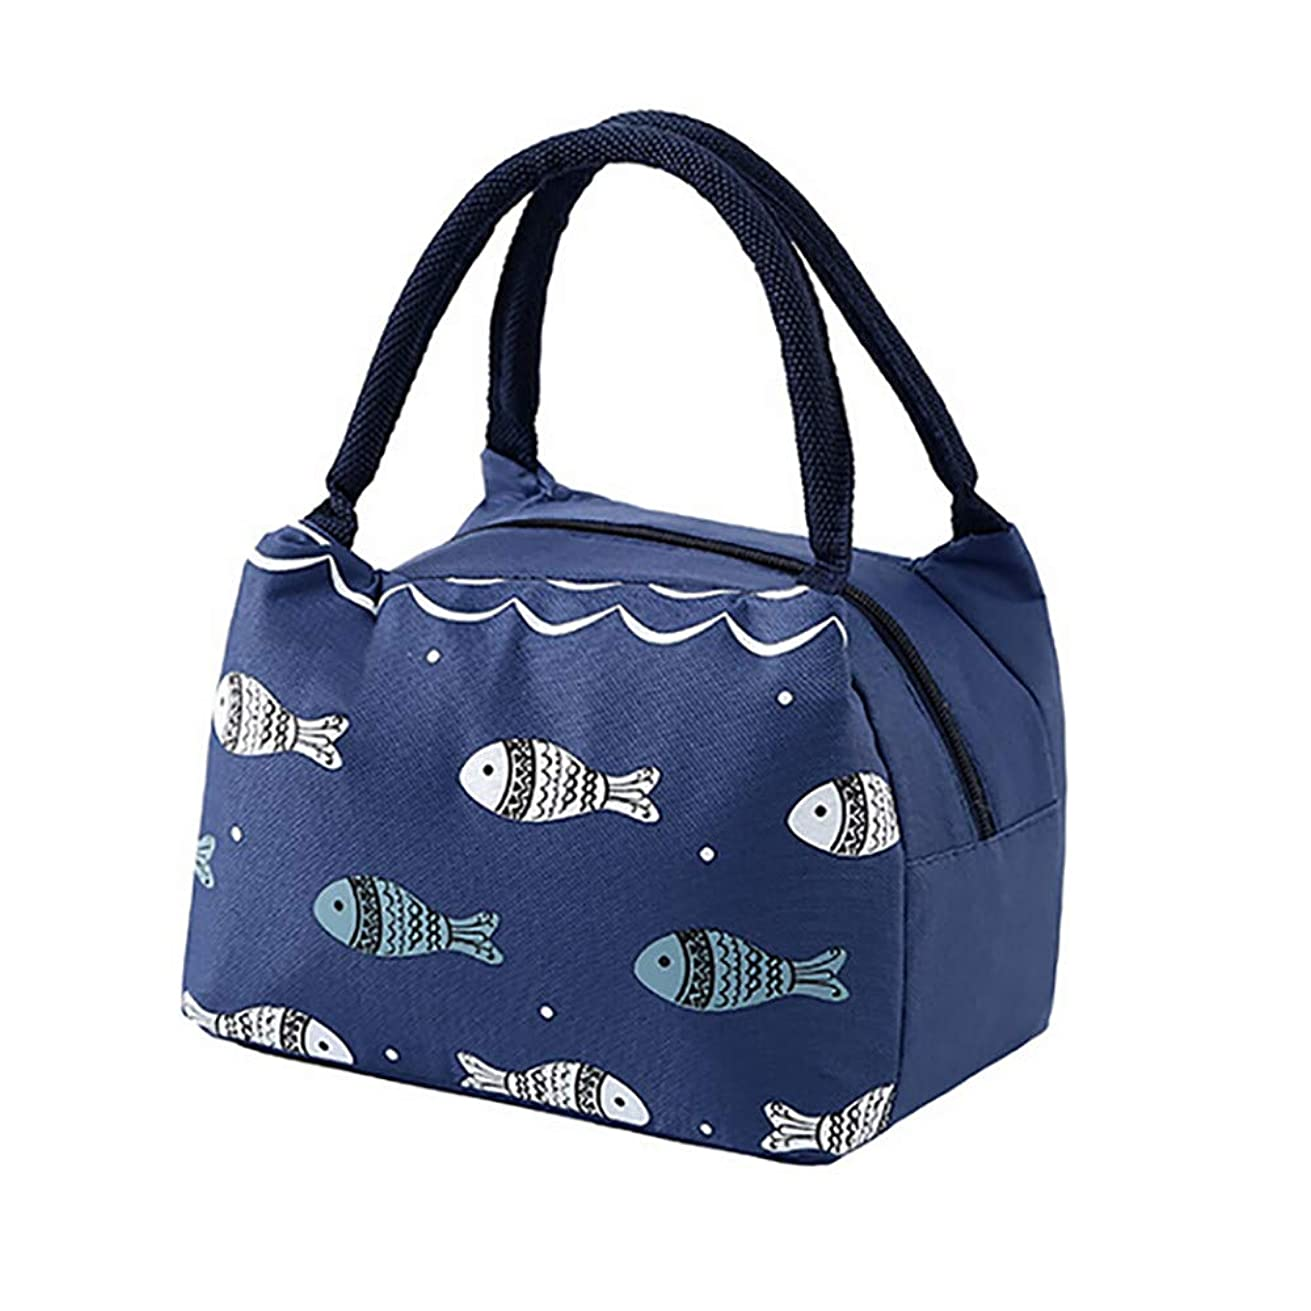 Jessie storee Insulated Lunch Bag High Capacity Cooler Bento Box Waterproof Reusable Thermal Portable Bag - Office Work Picnic Hiking Beach Lunch Box Organizer for Family Food Storage Bag,